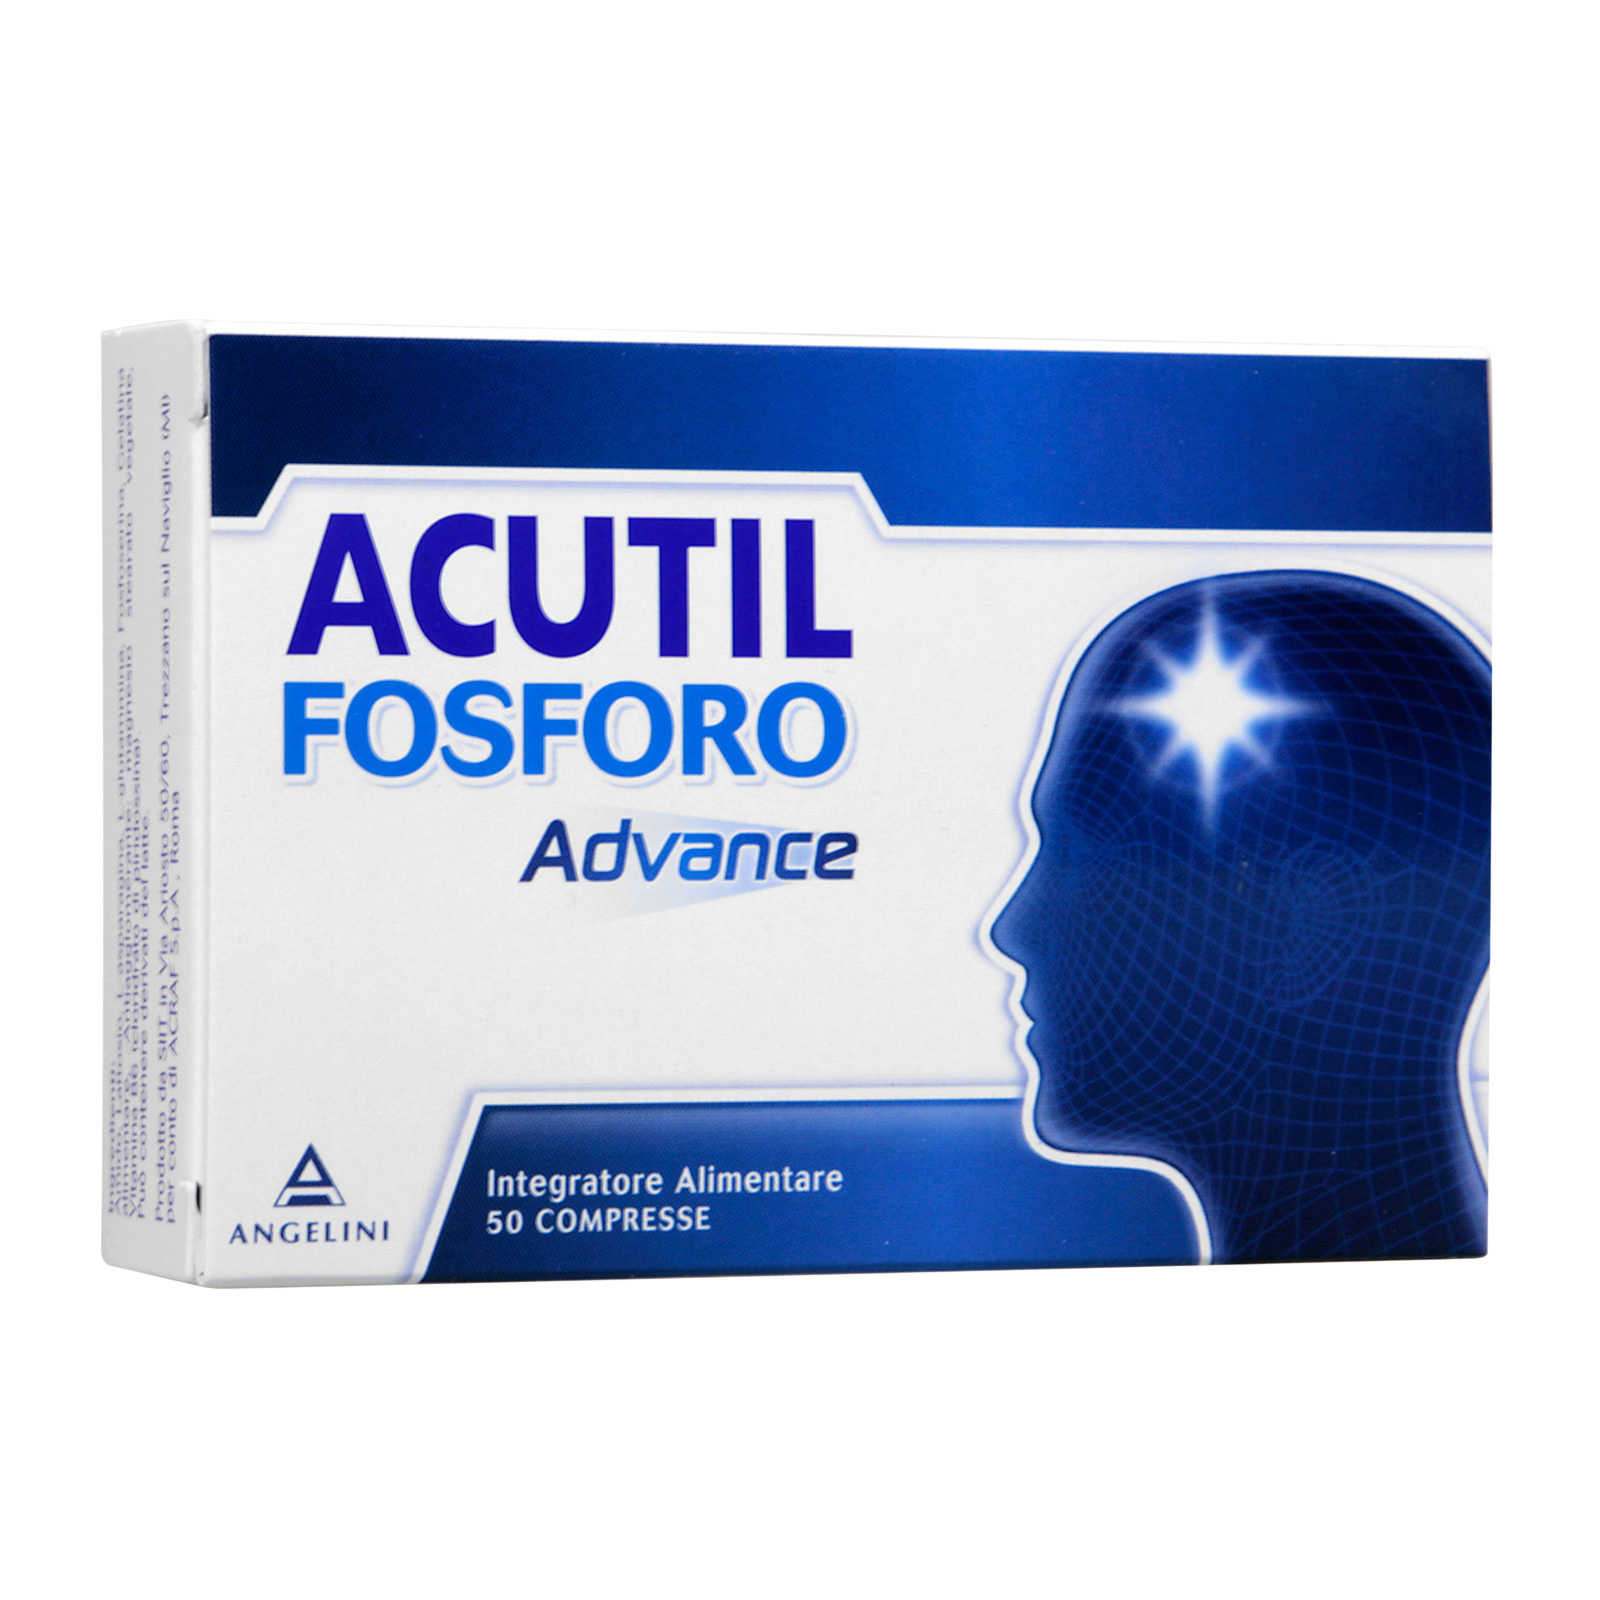 Acutil - Fosforo Advance in Compresse